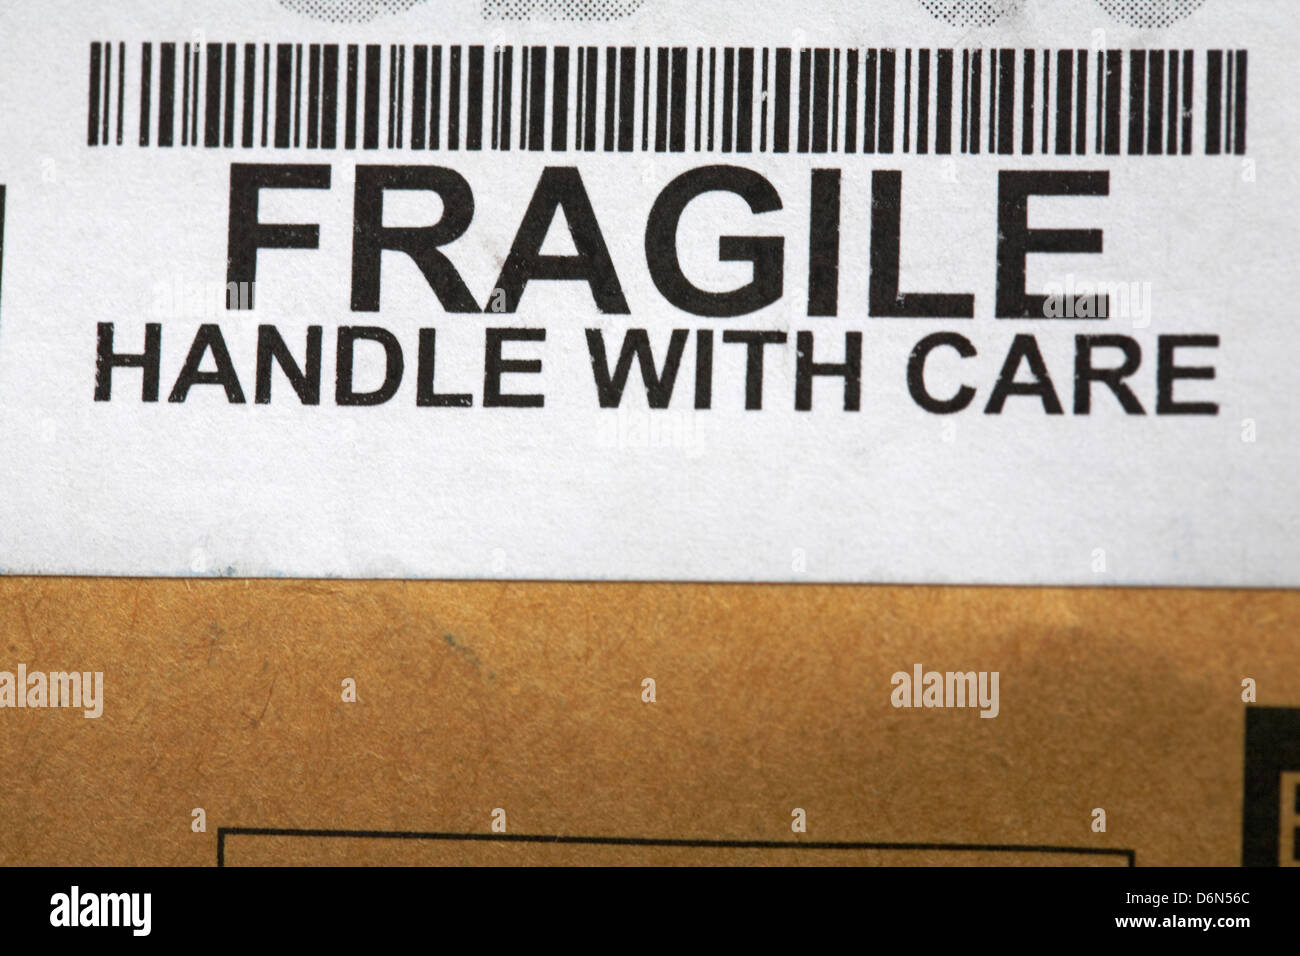 fragile handle with care sticker and barcode on package - Stock Image